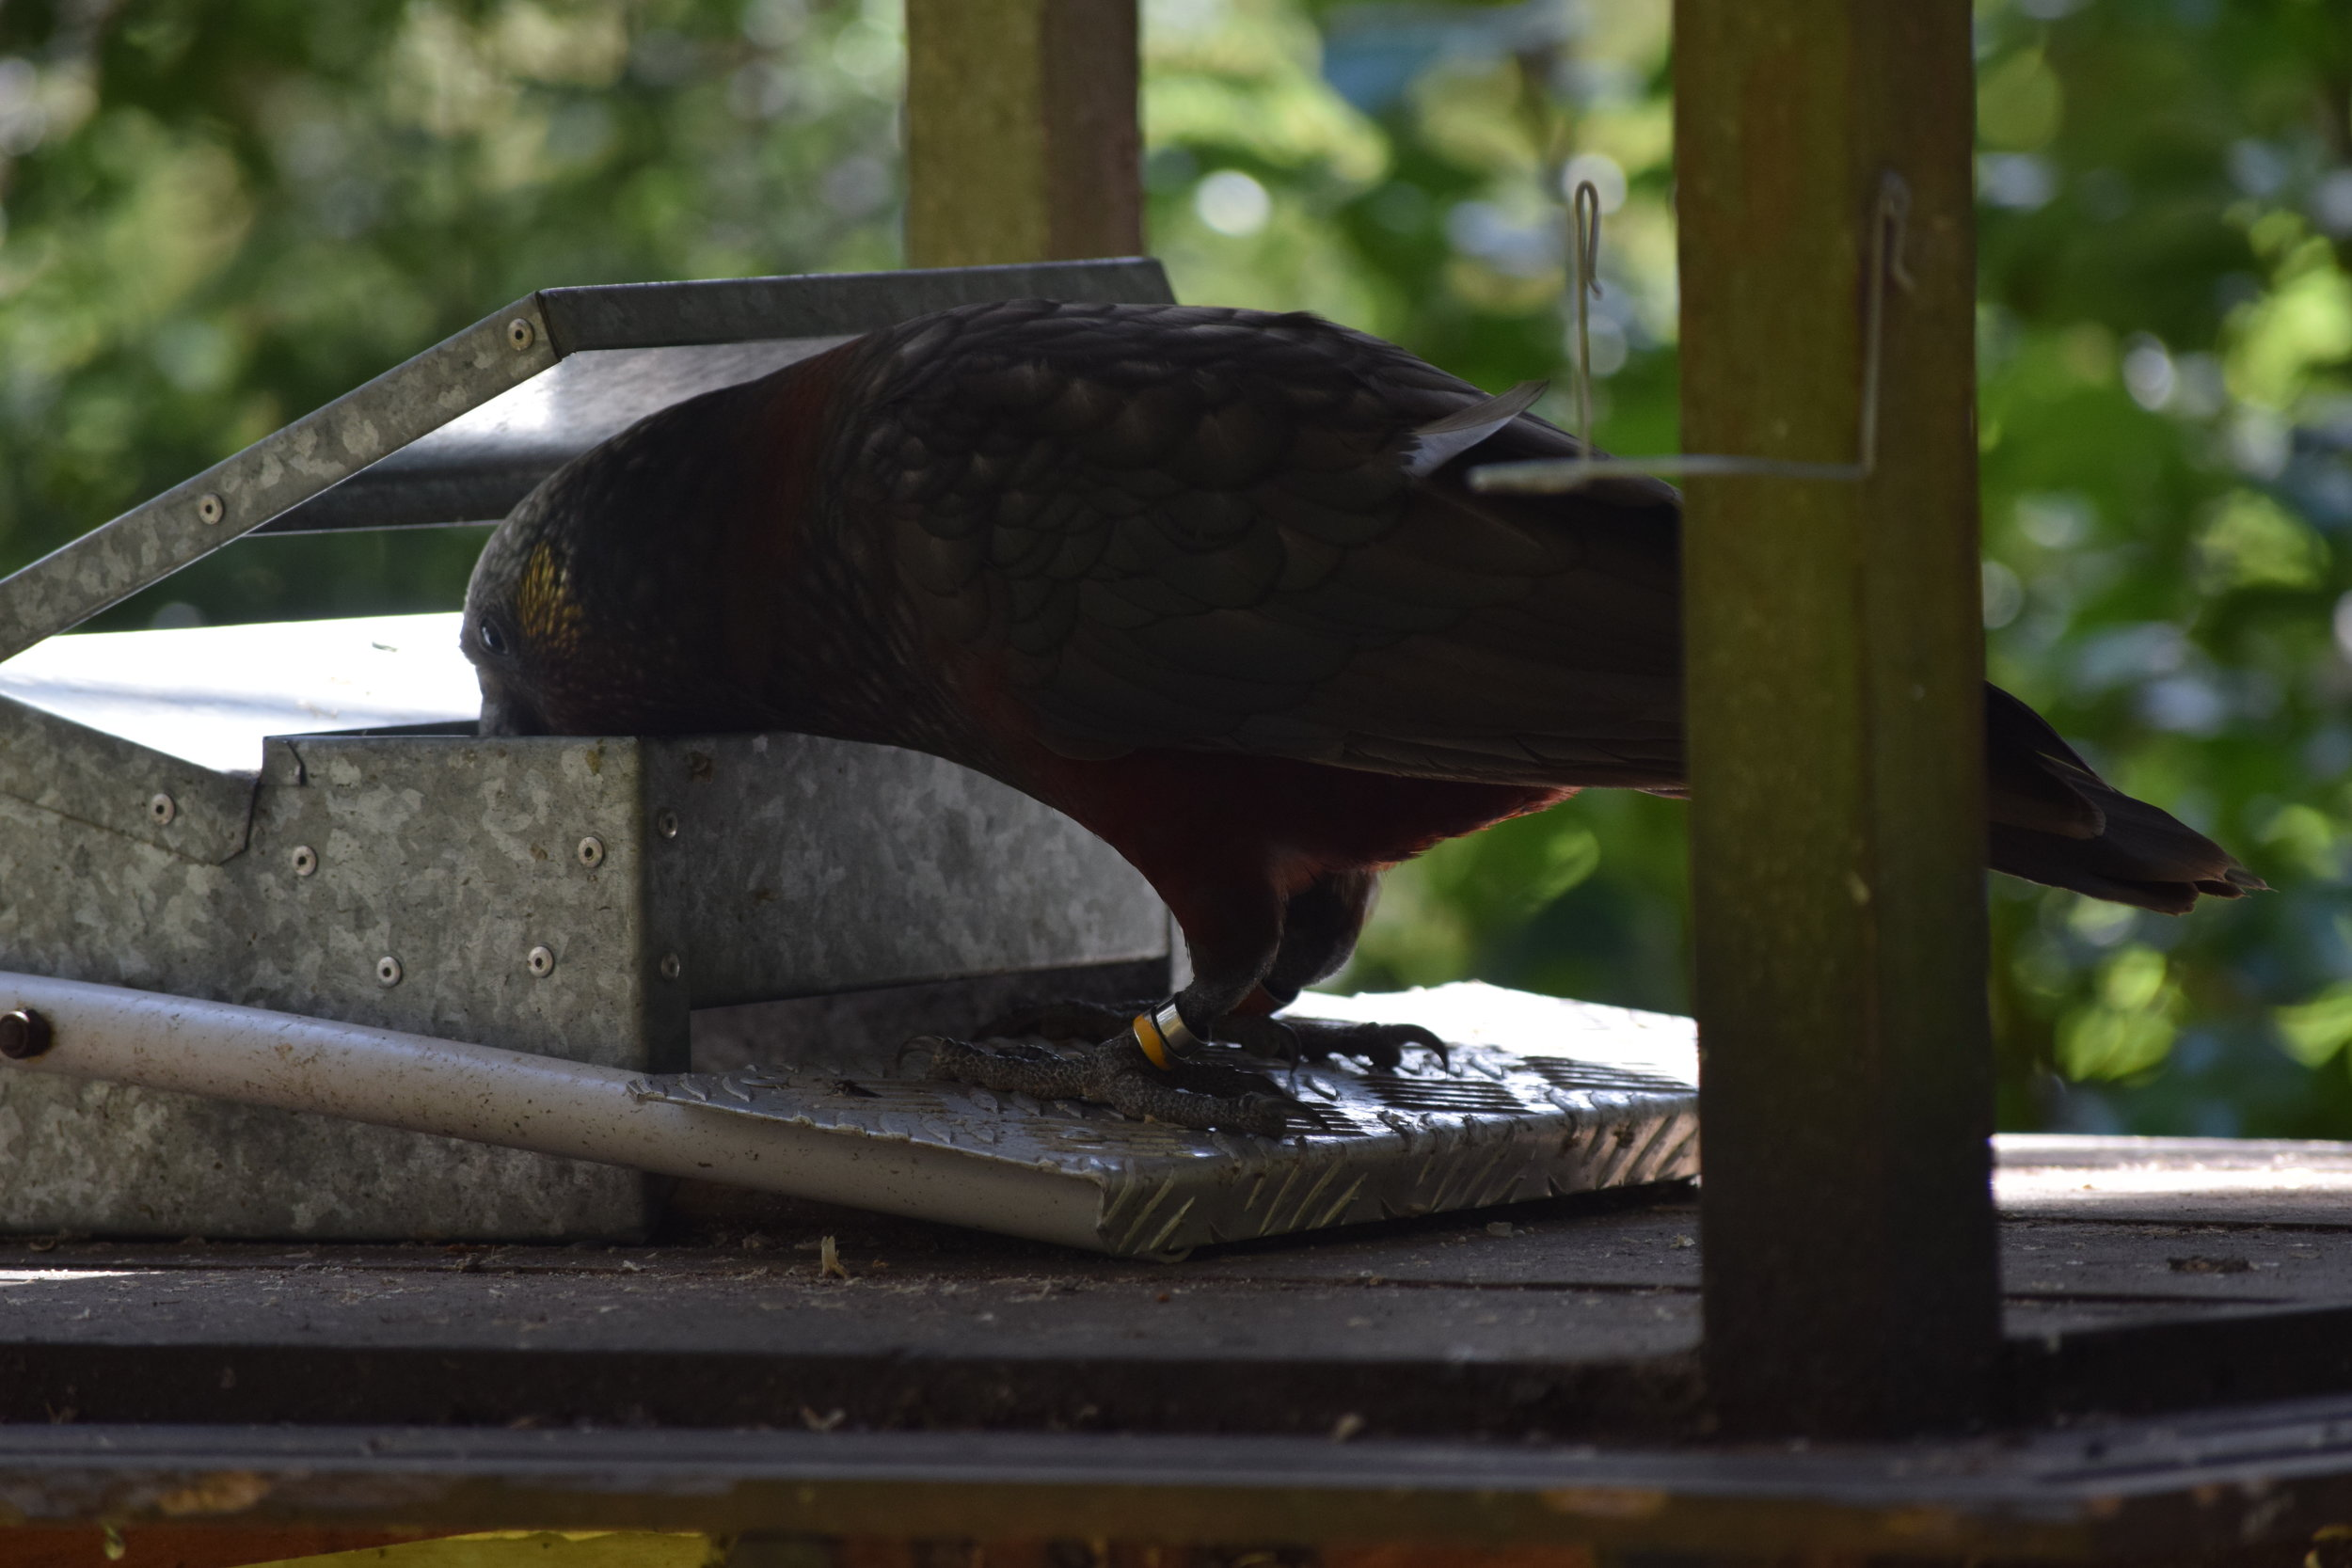 A South Island kaka, one of NZ's native parrot species. These feeder boxes are designed so that only the heavier parrots can stand on the lever to open them.